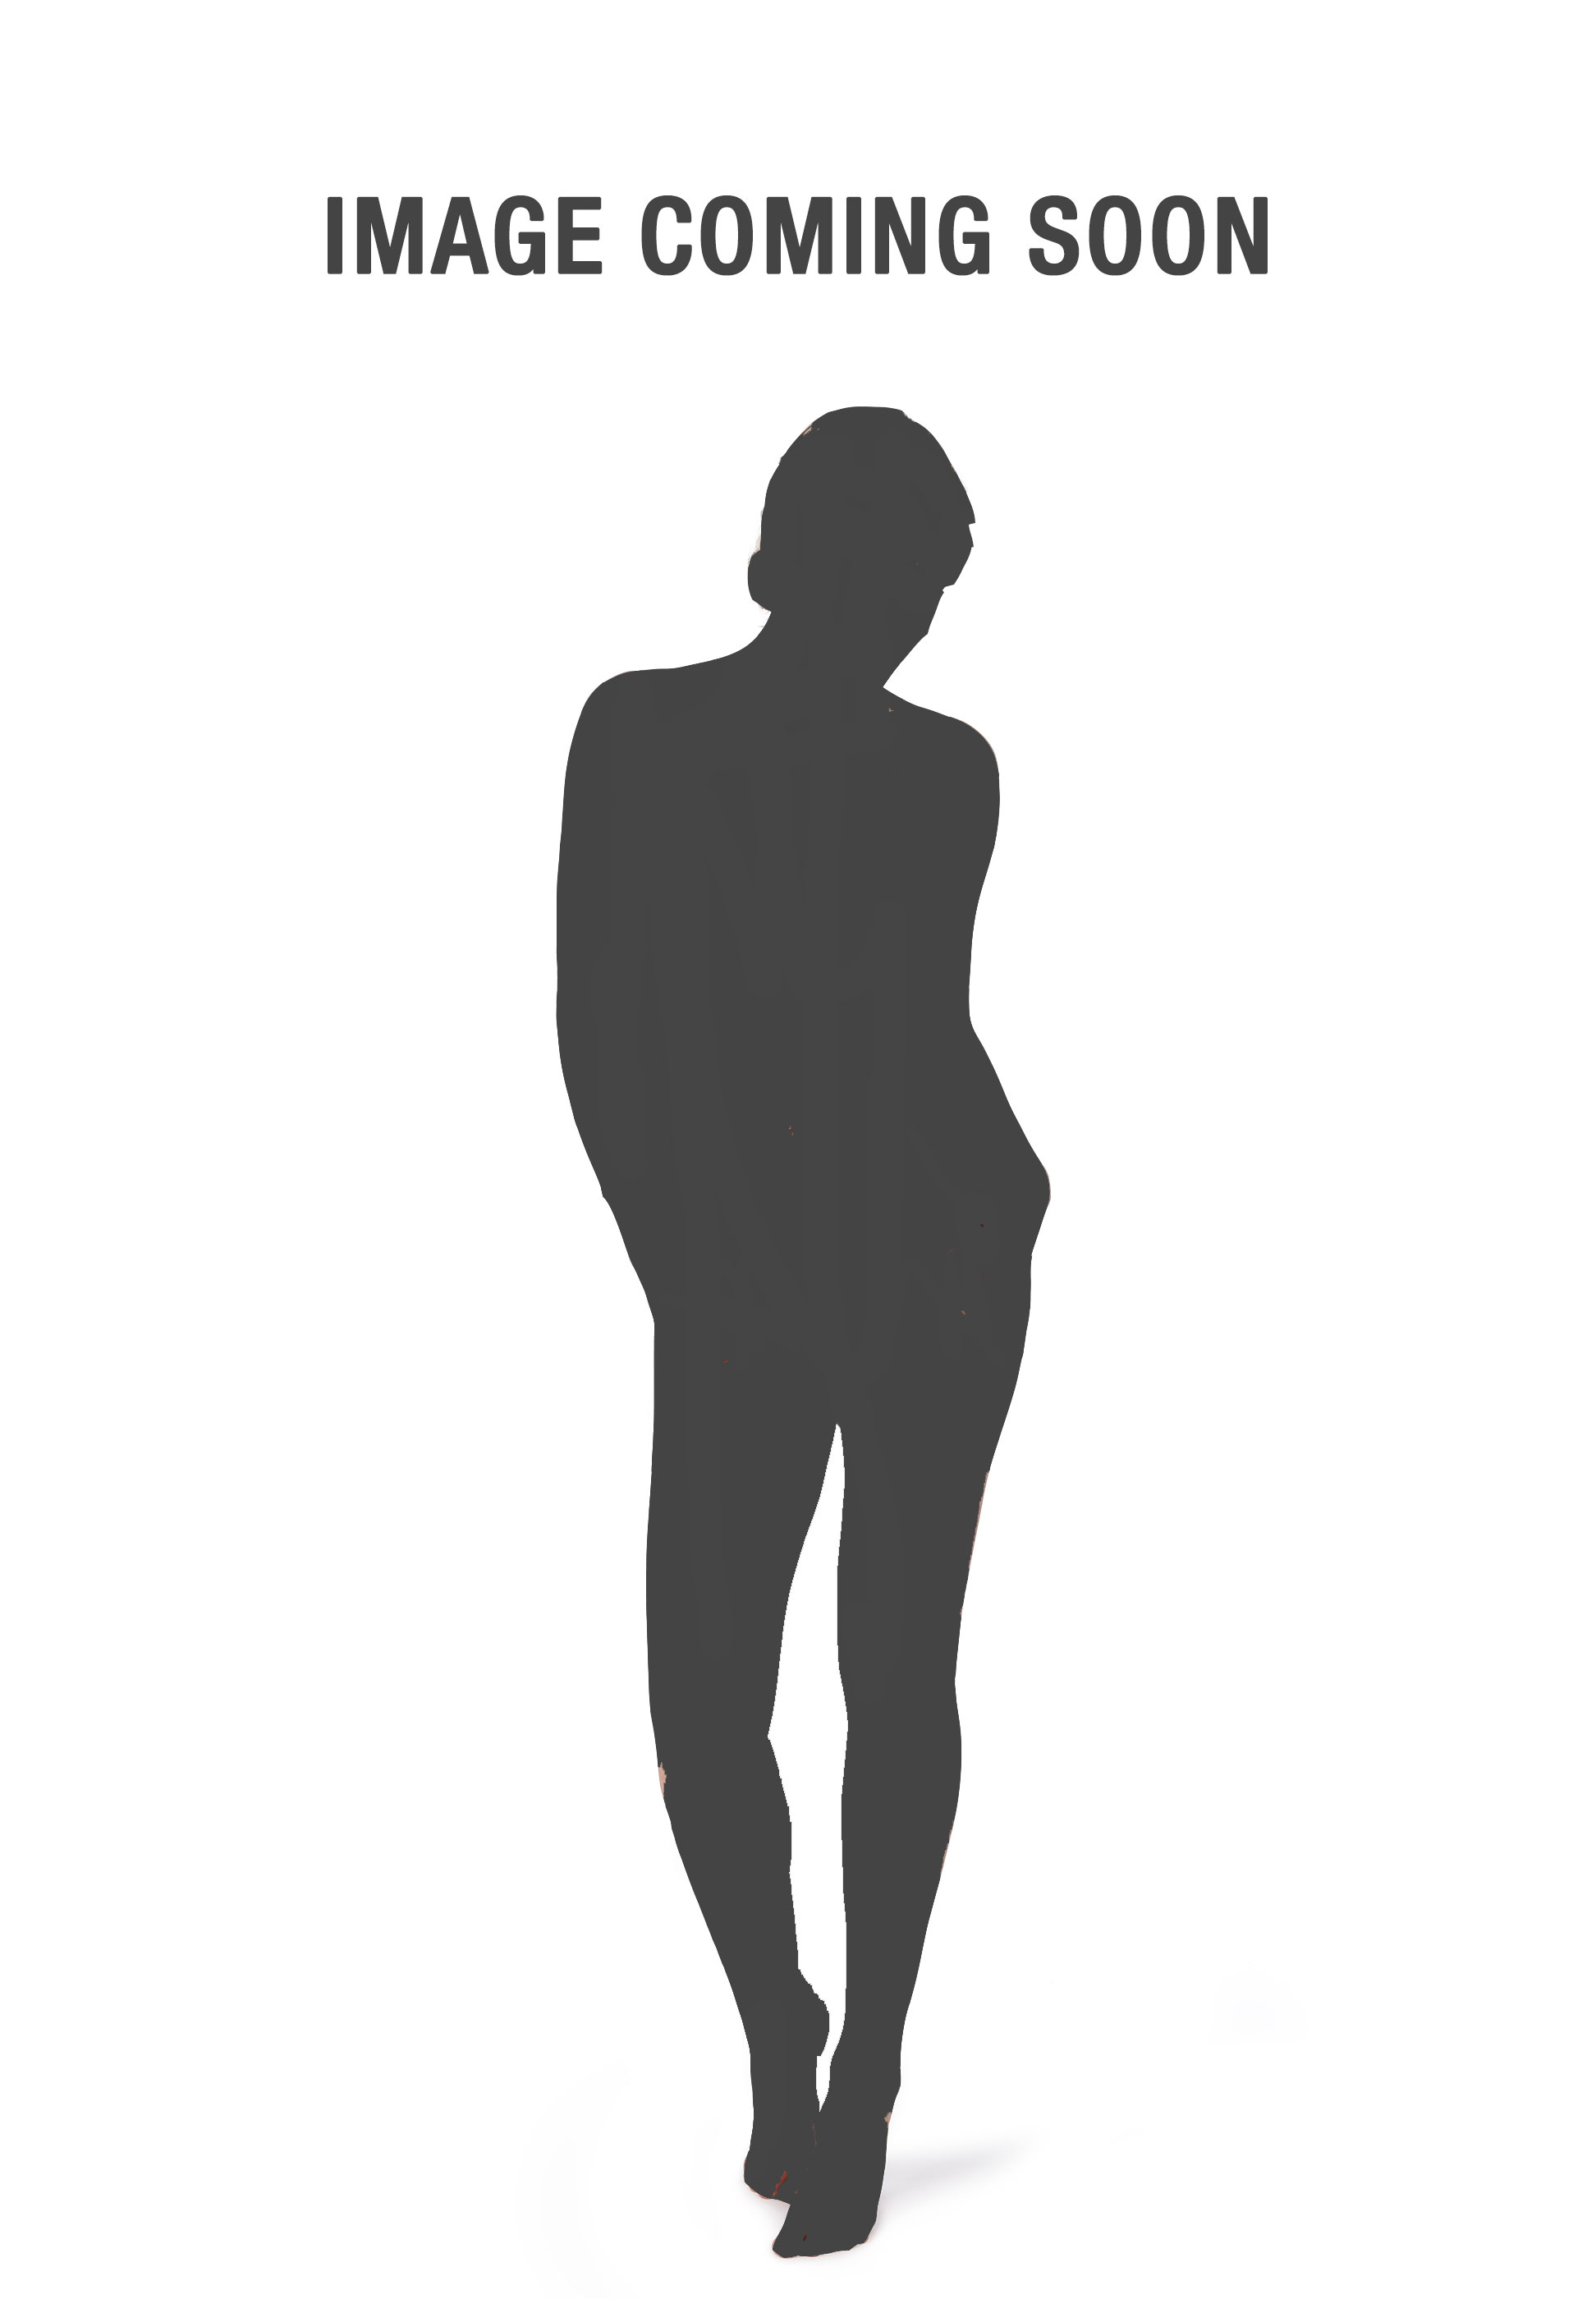 HUBER_Basic_W_24hourswomenSleep_robe_018929_010399_060.jpg